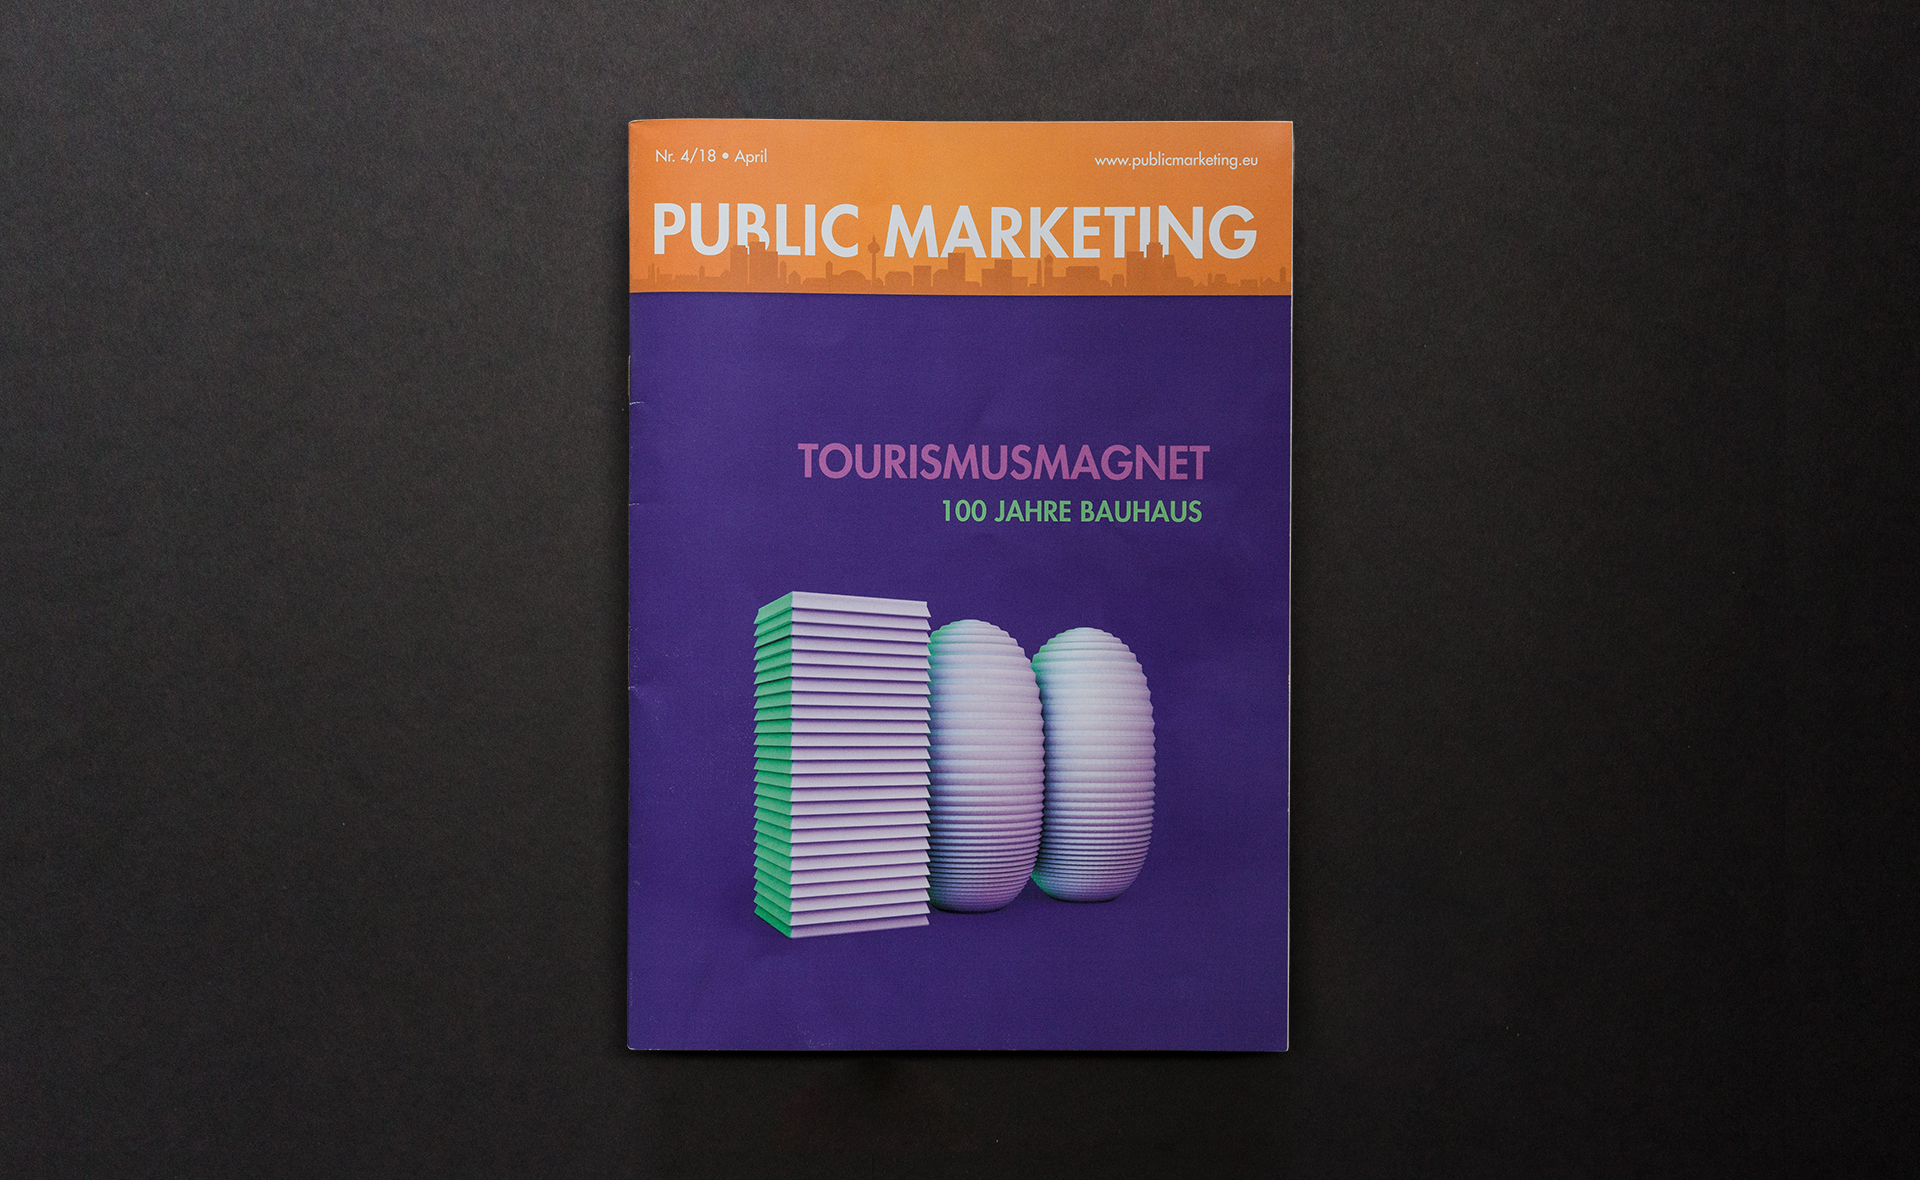 The cover of the fourth Public Marketing issue in 2018